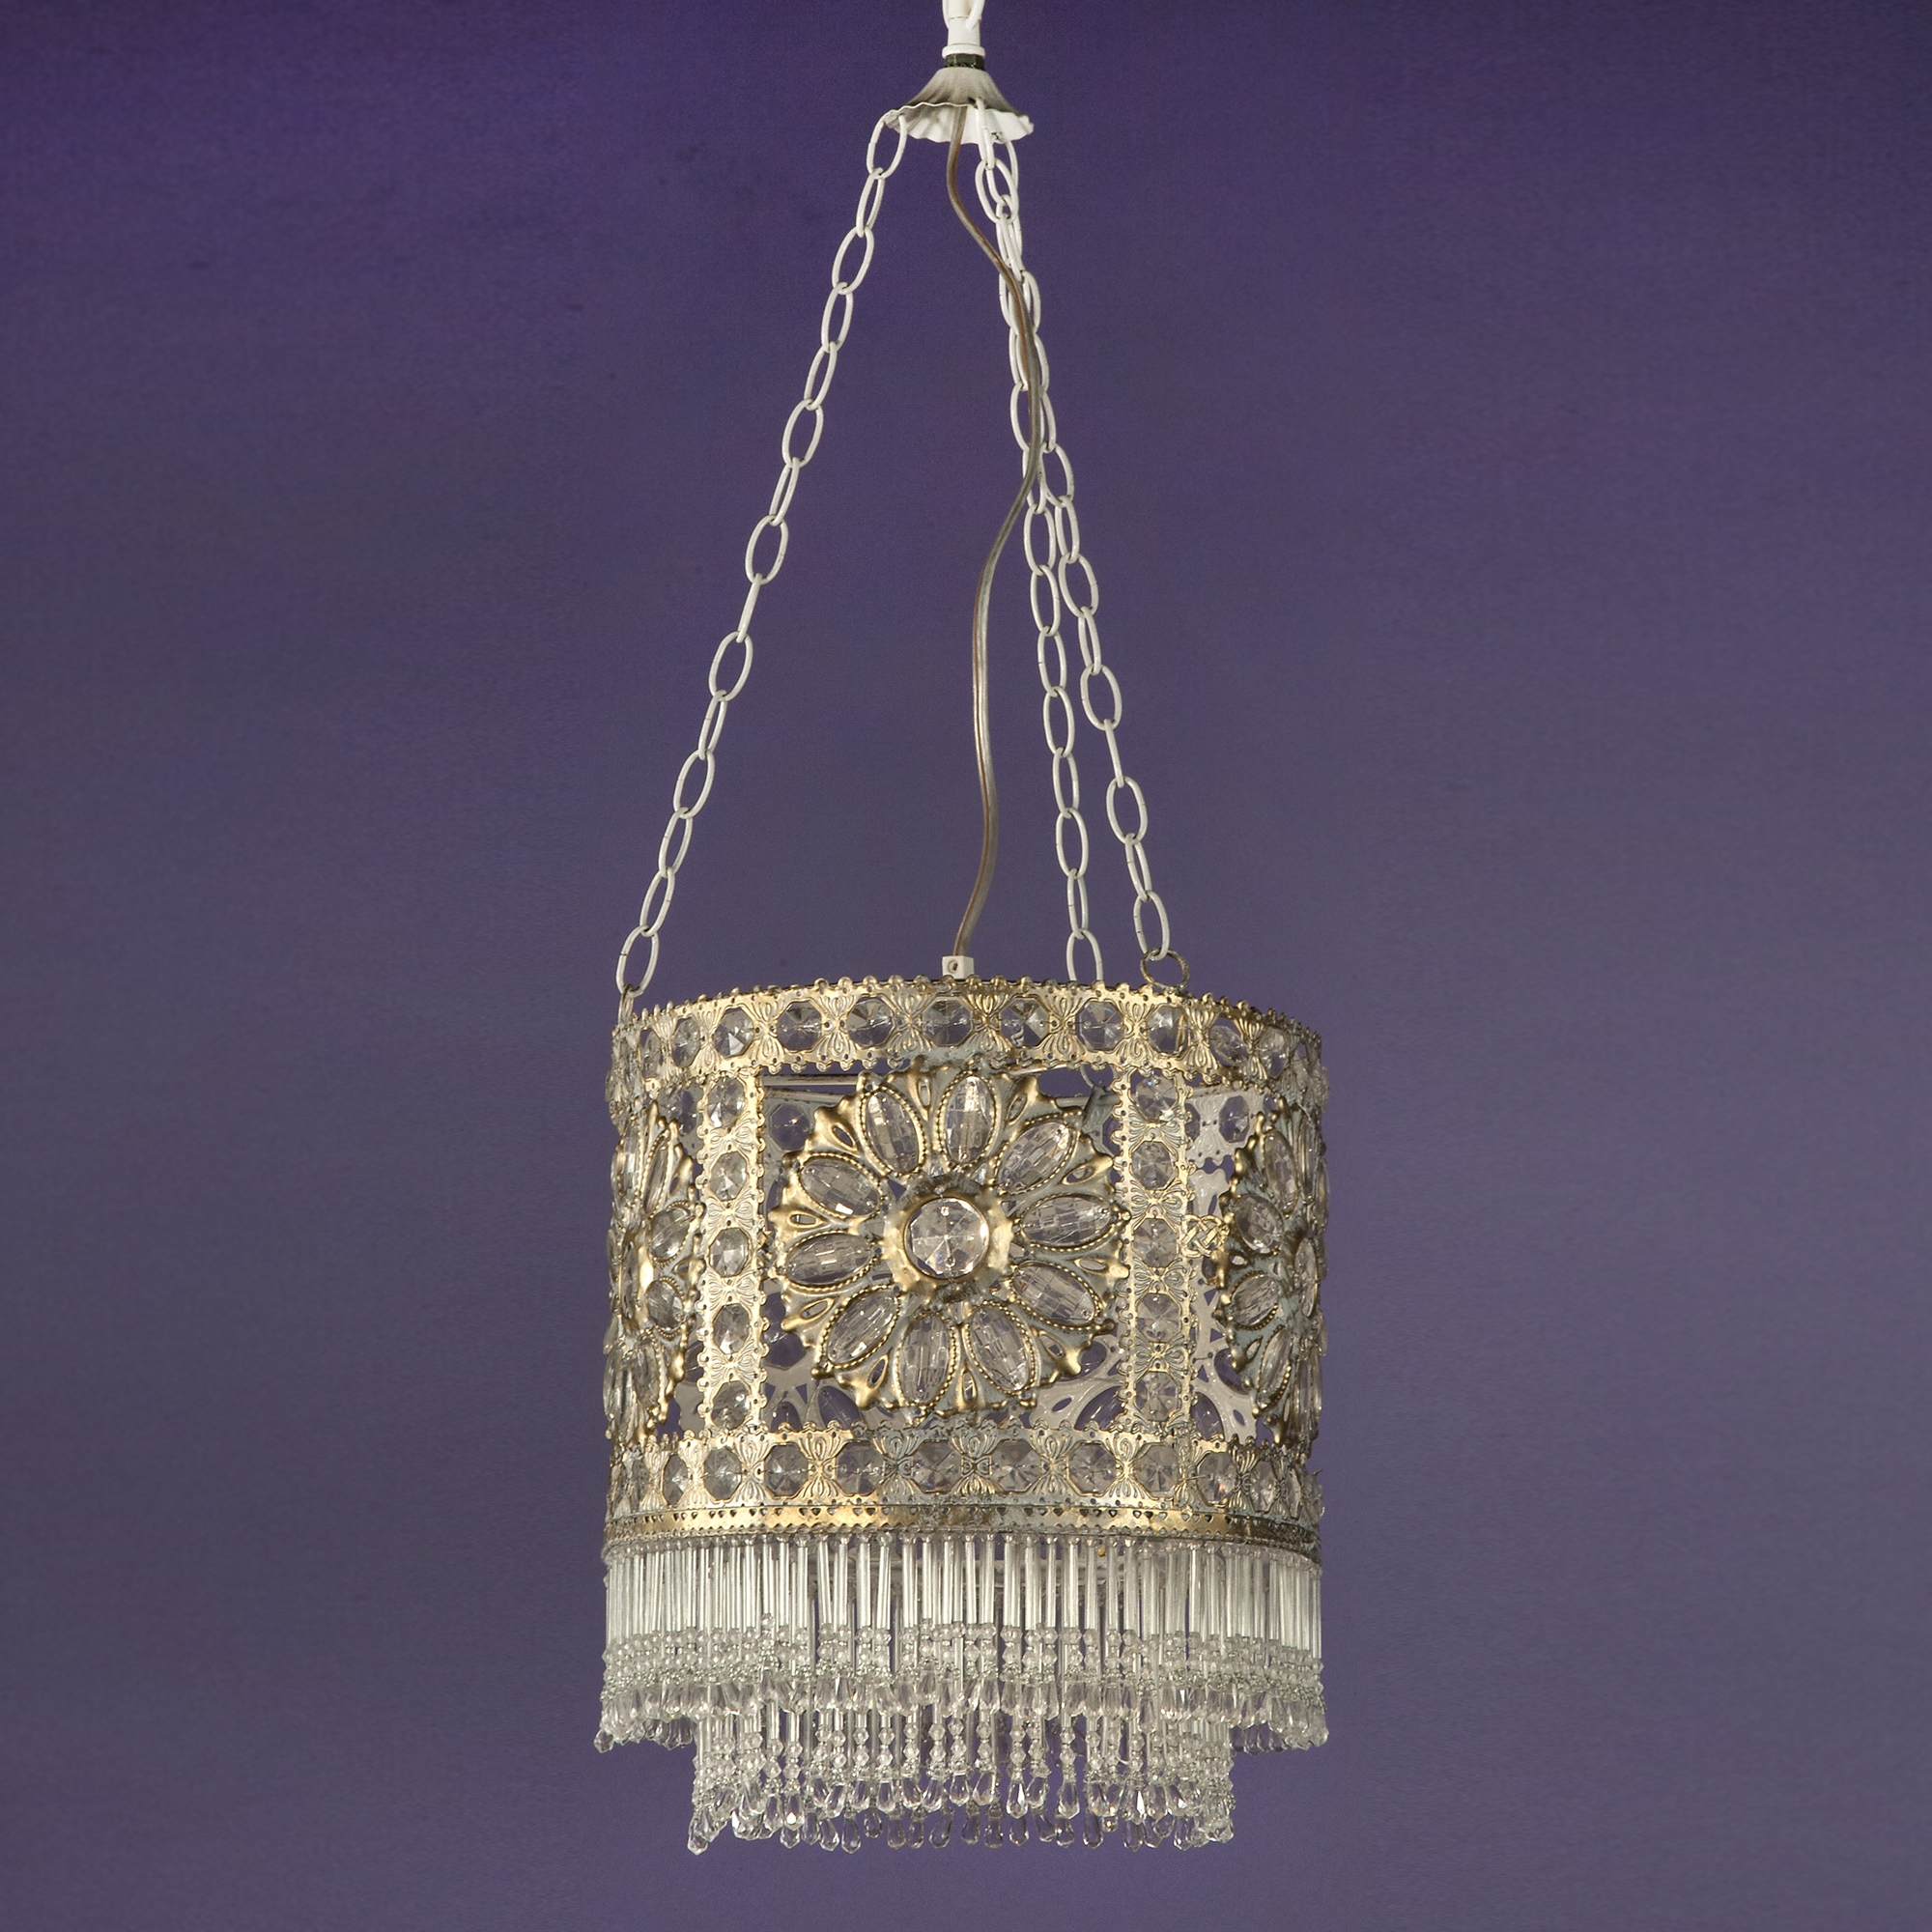 Jewelled Ceiling Light - Antique White